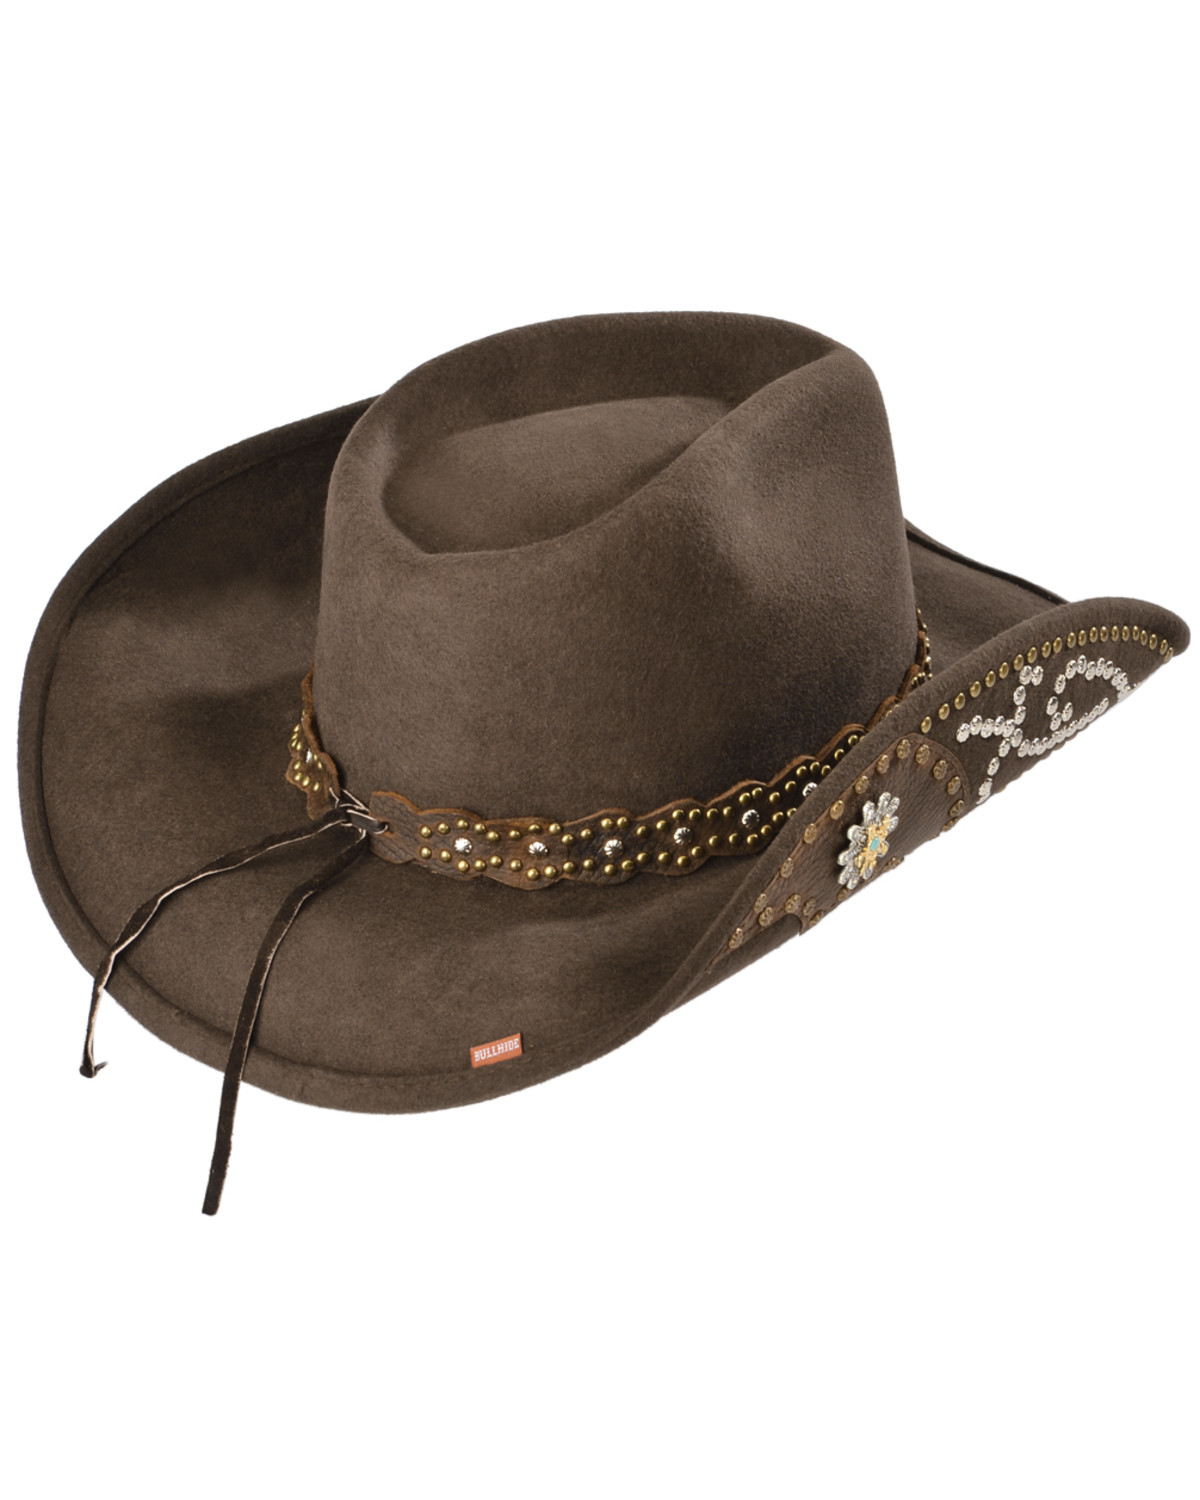 5f50e3896f8 Bullhide Hats Women s Your Everything Embellished Felt Cowgirl Hat ...